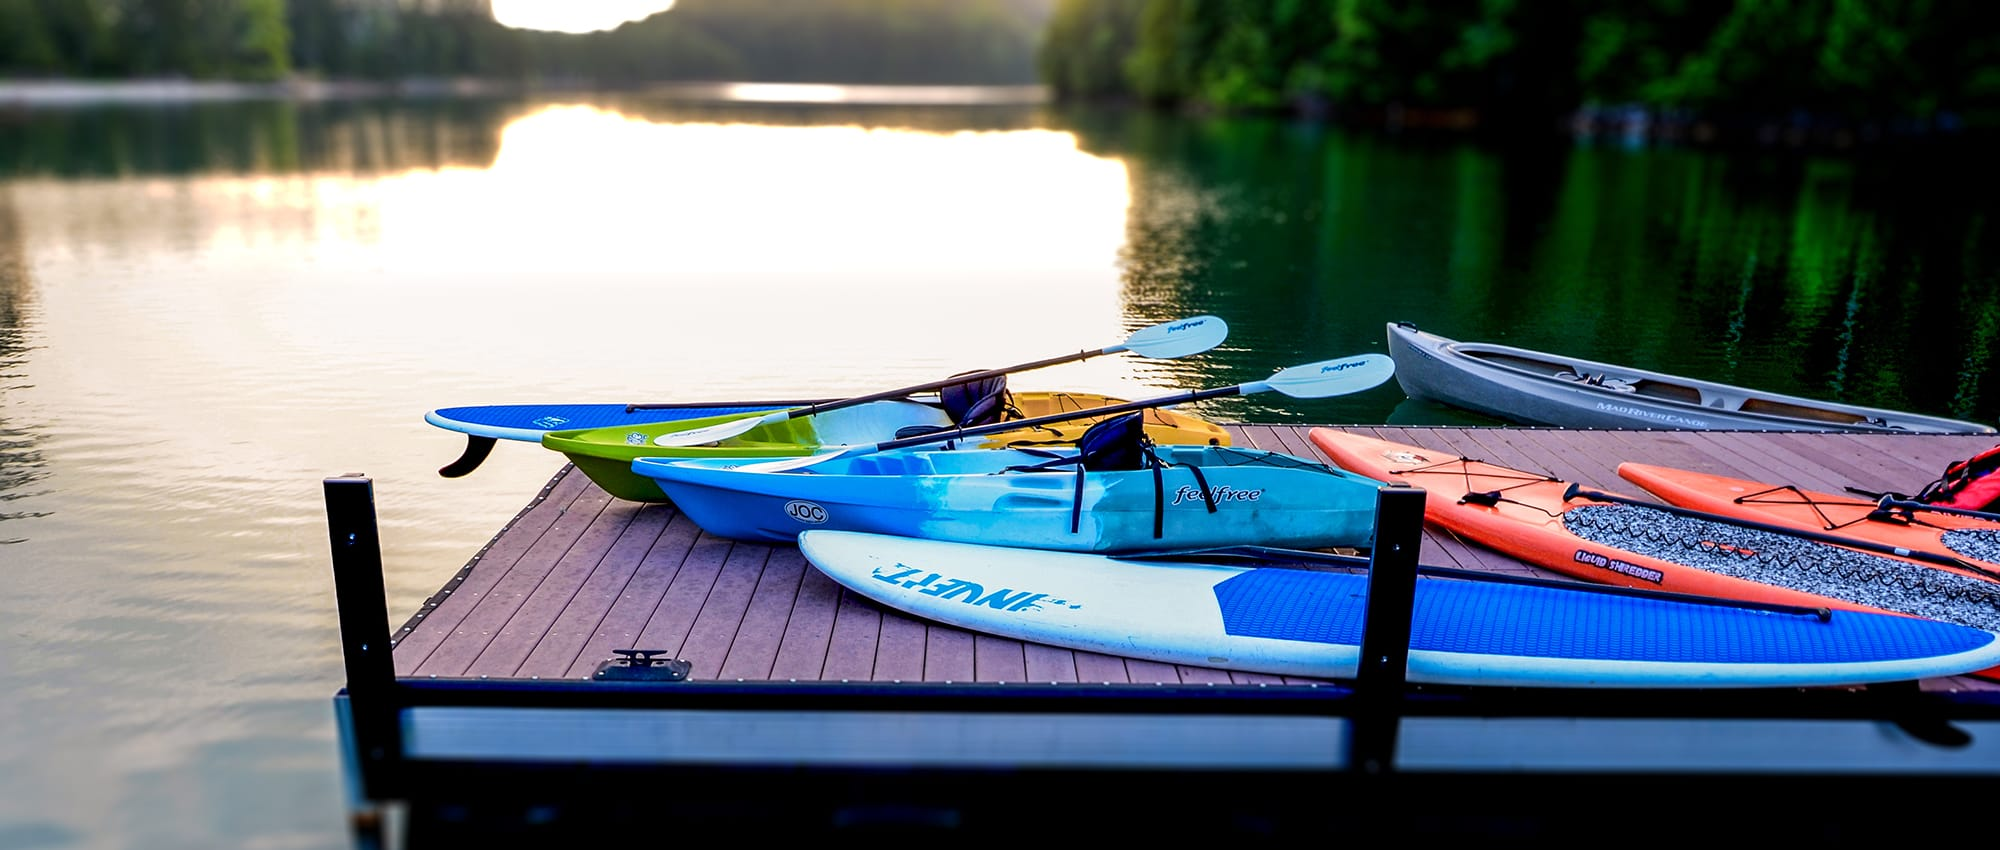 Paddle boards on Lake Keowee